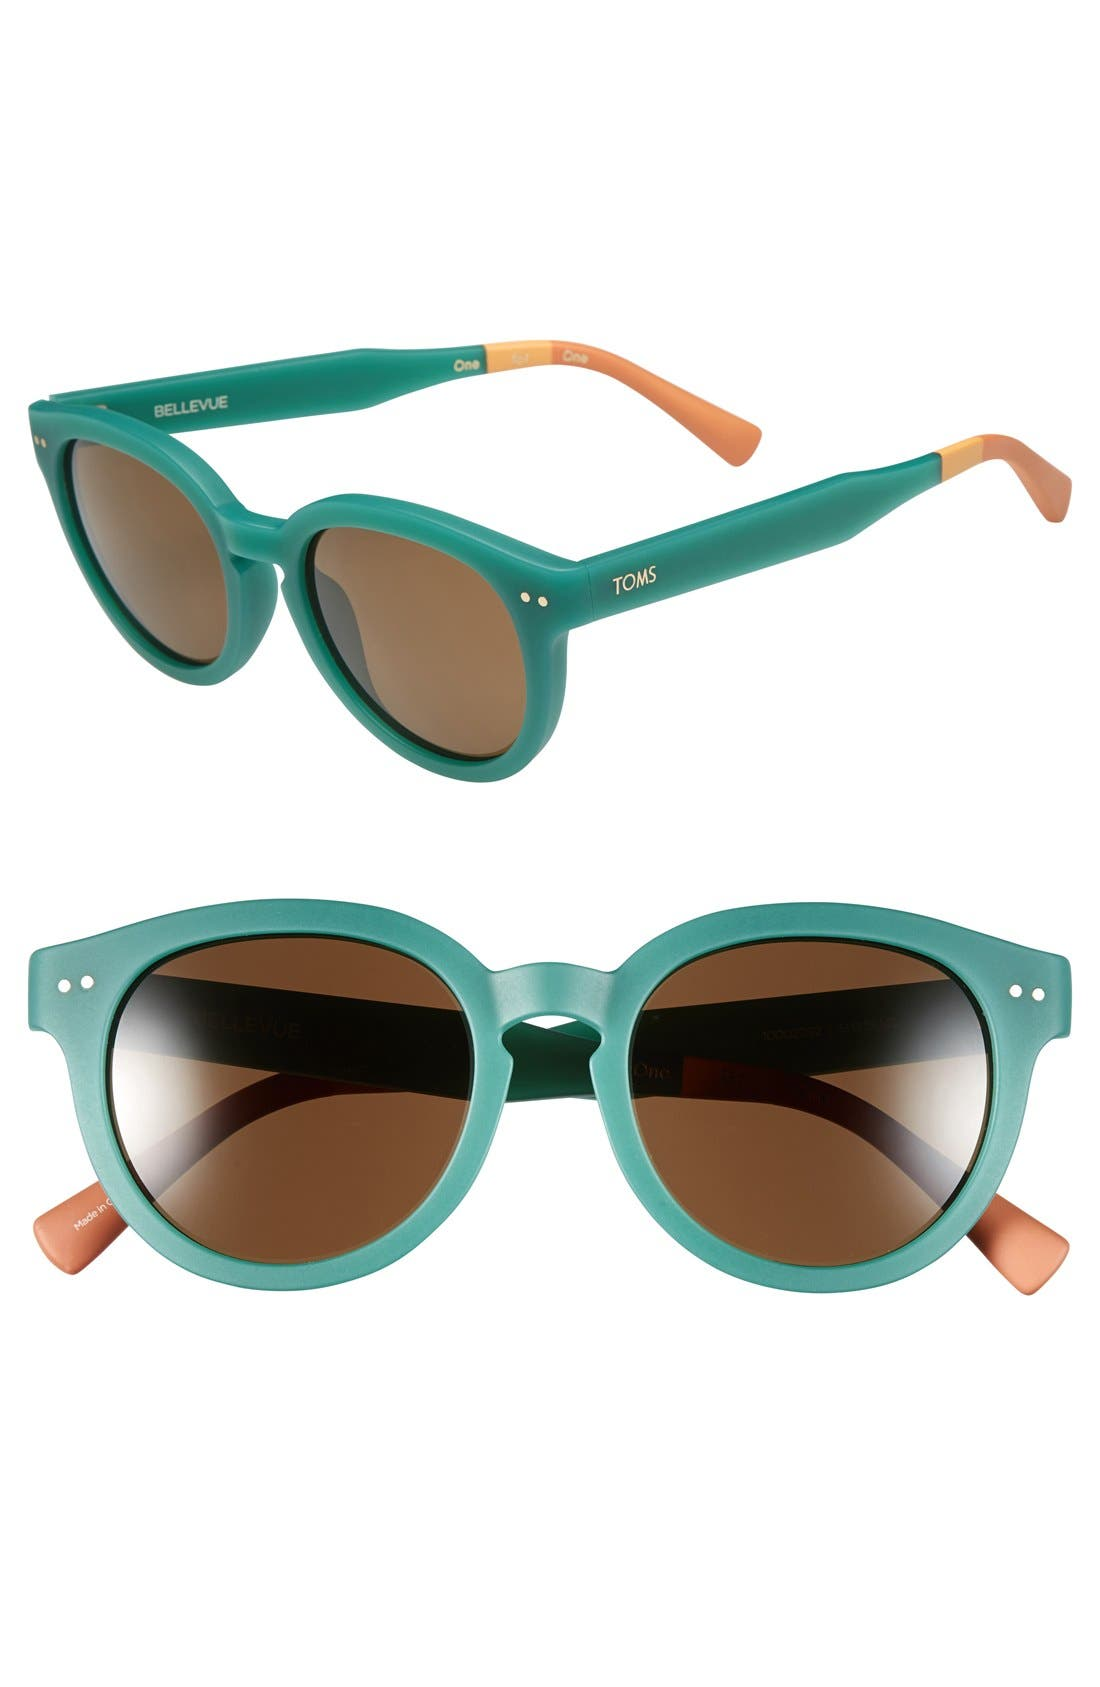 Main Image - TOMS 'Bellevue' 57mm Sunglasses